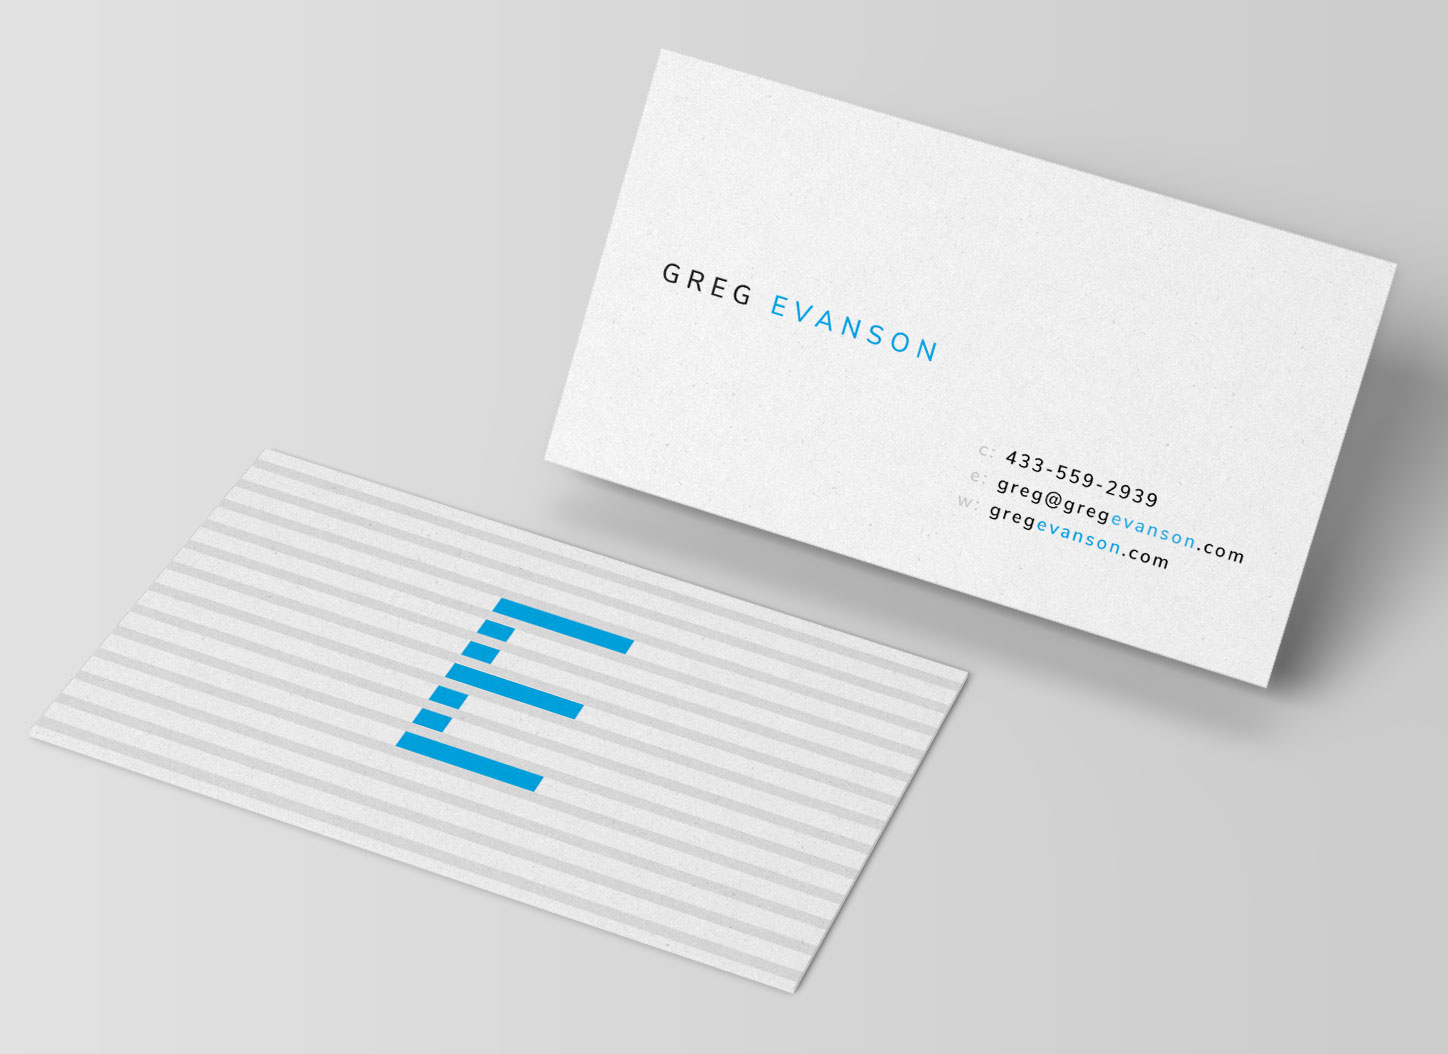 5 Free Modern Business Card Templates + Why Business Cards Are Even More Critical In The Digital